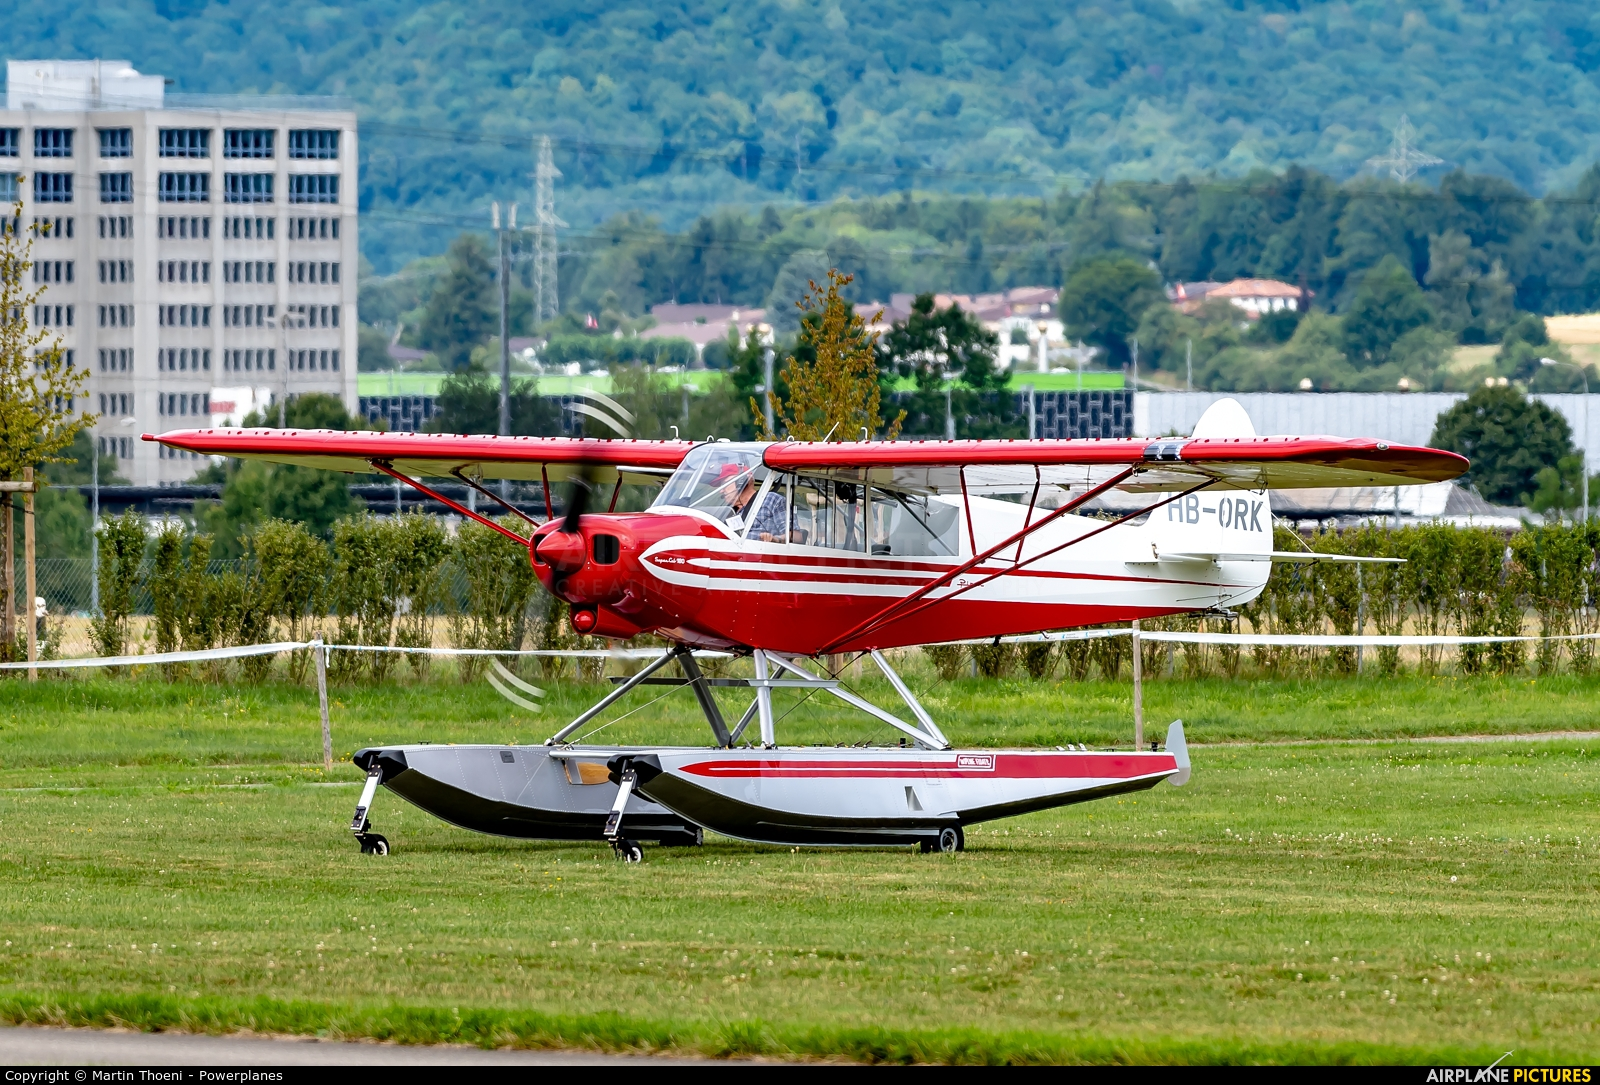 Private HB-ORK aircraft at Birrfeld